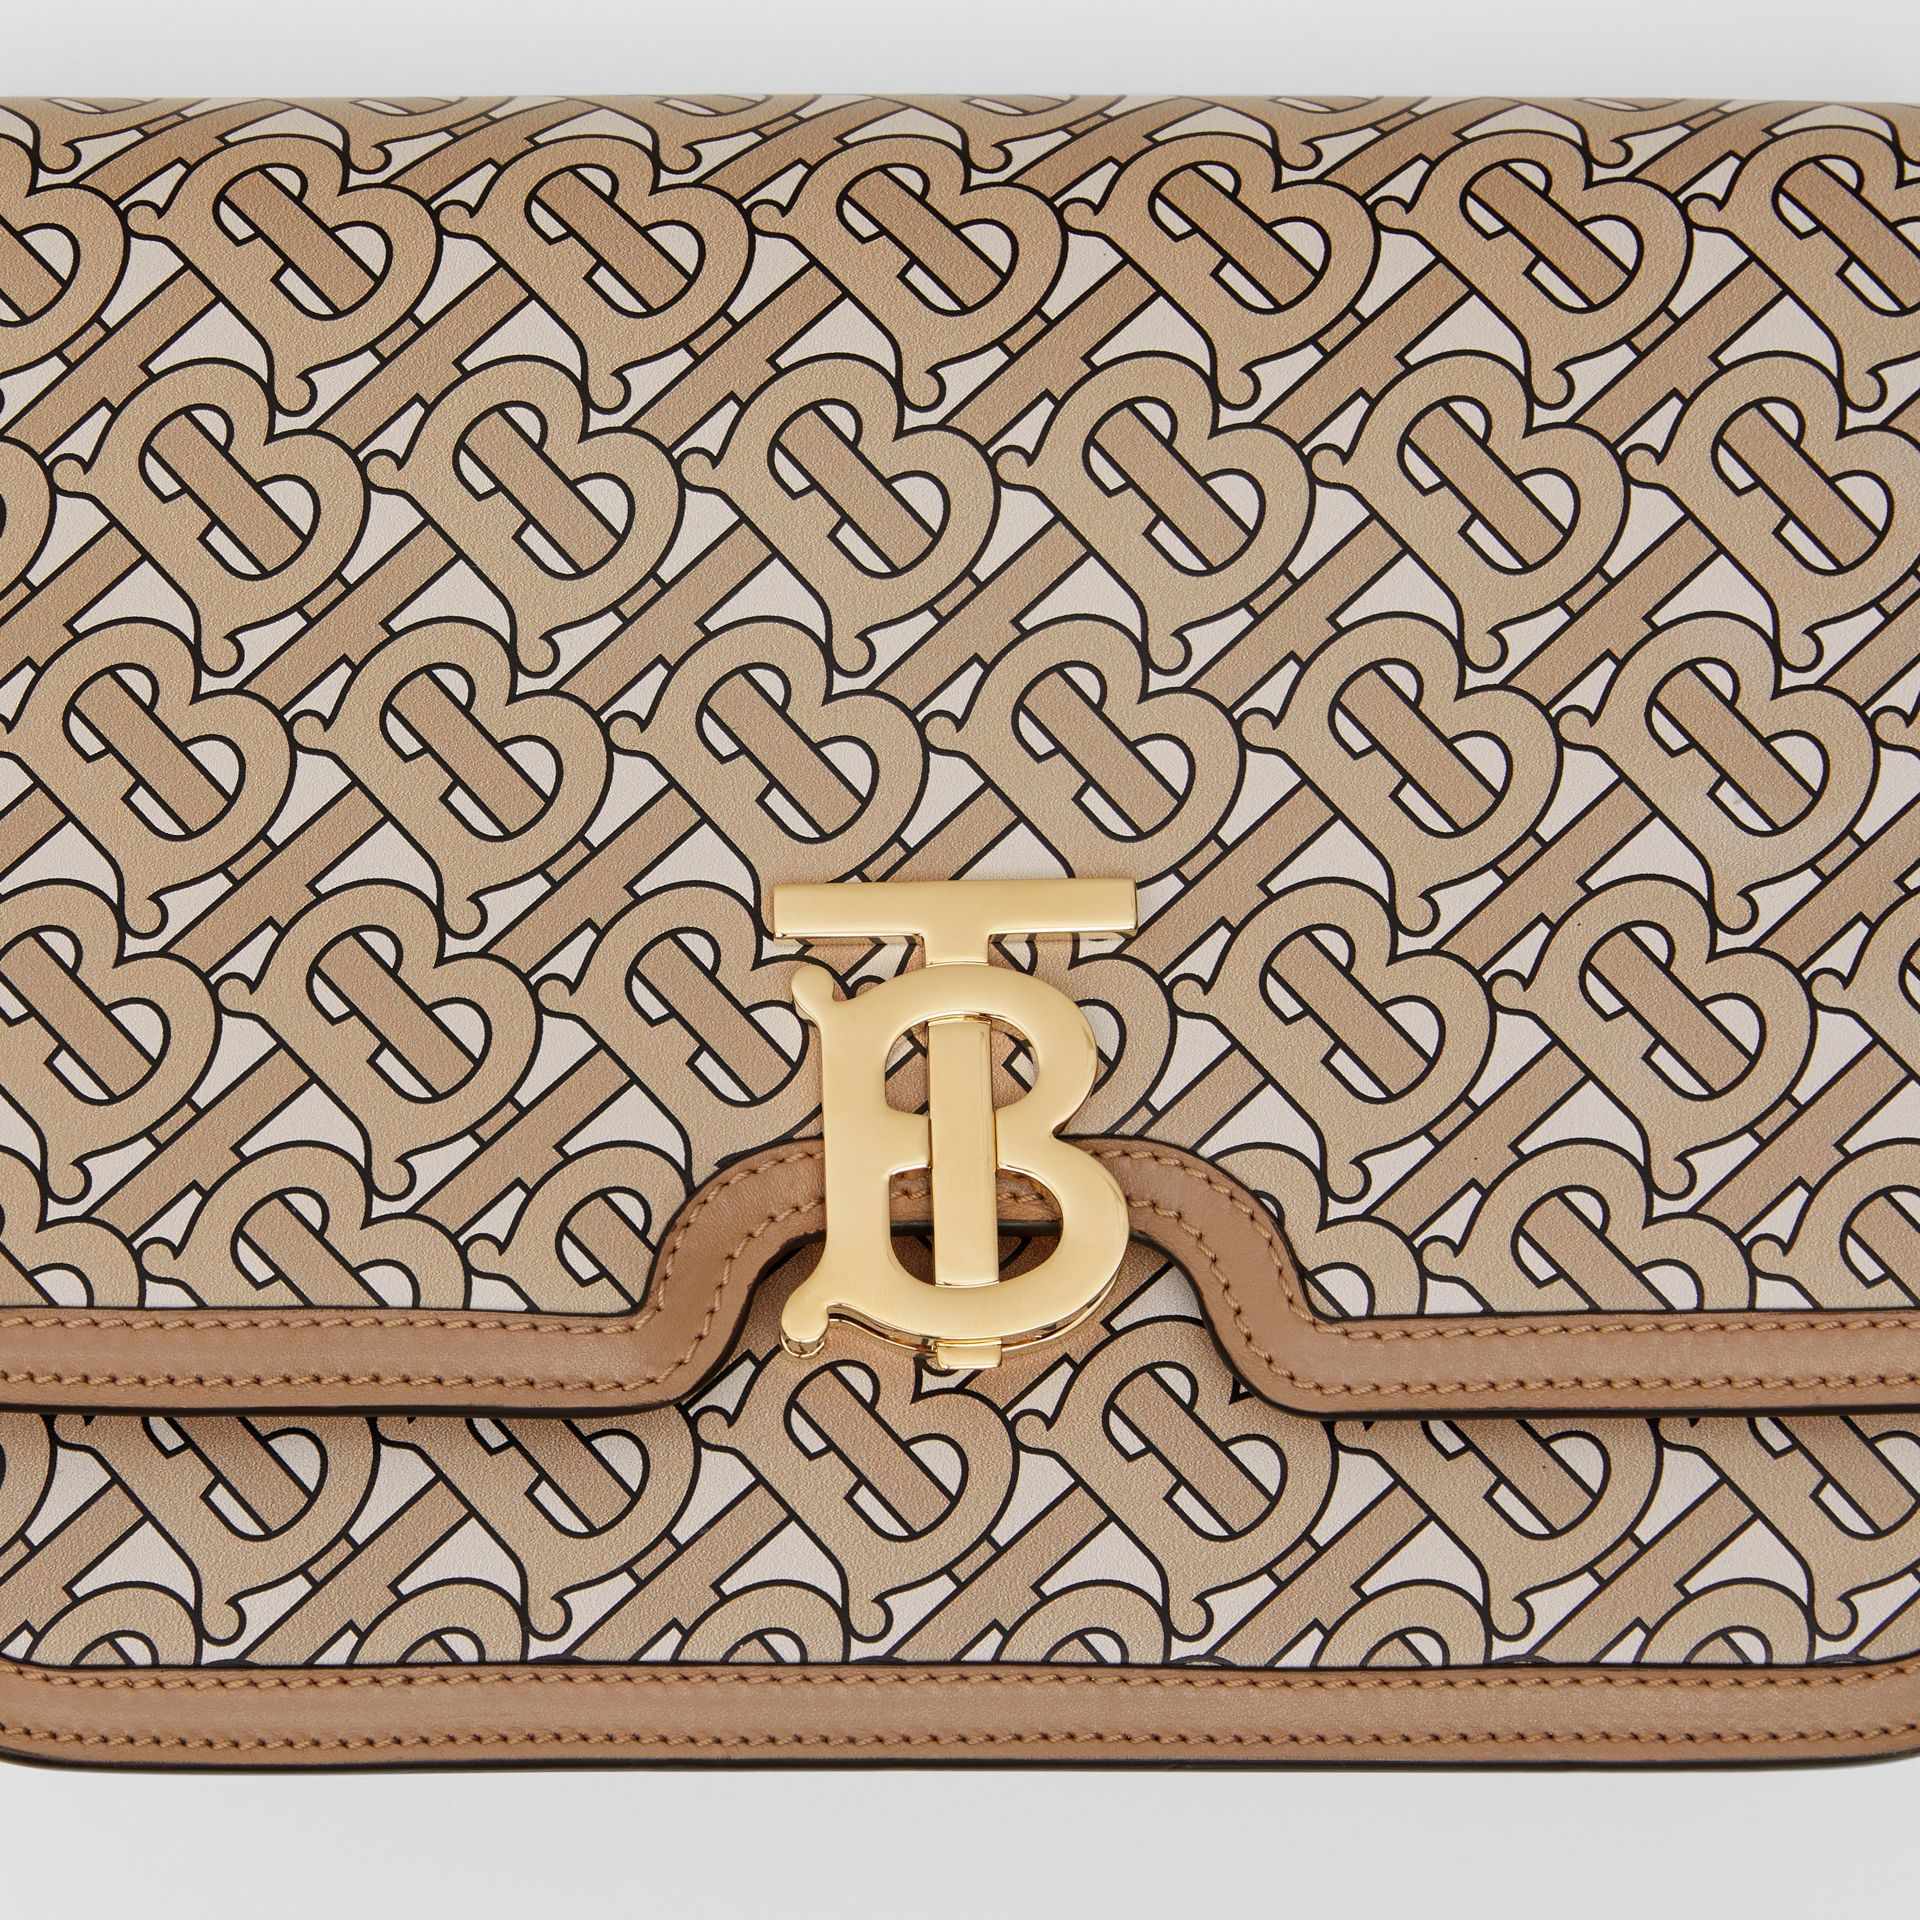 Medium Monogram Print Leather TB Bag in Beige - Women | Burberry United States - gallery image 1